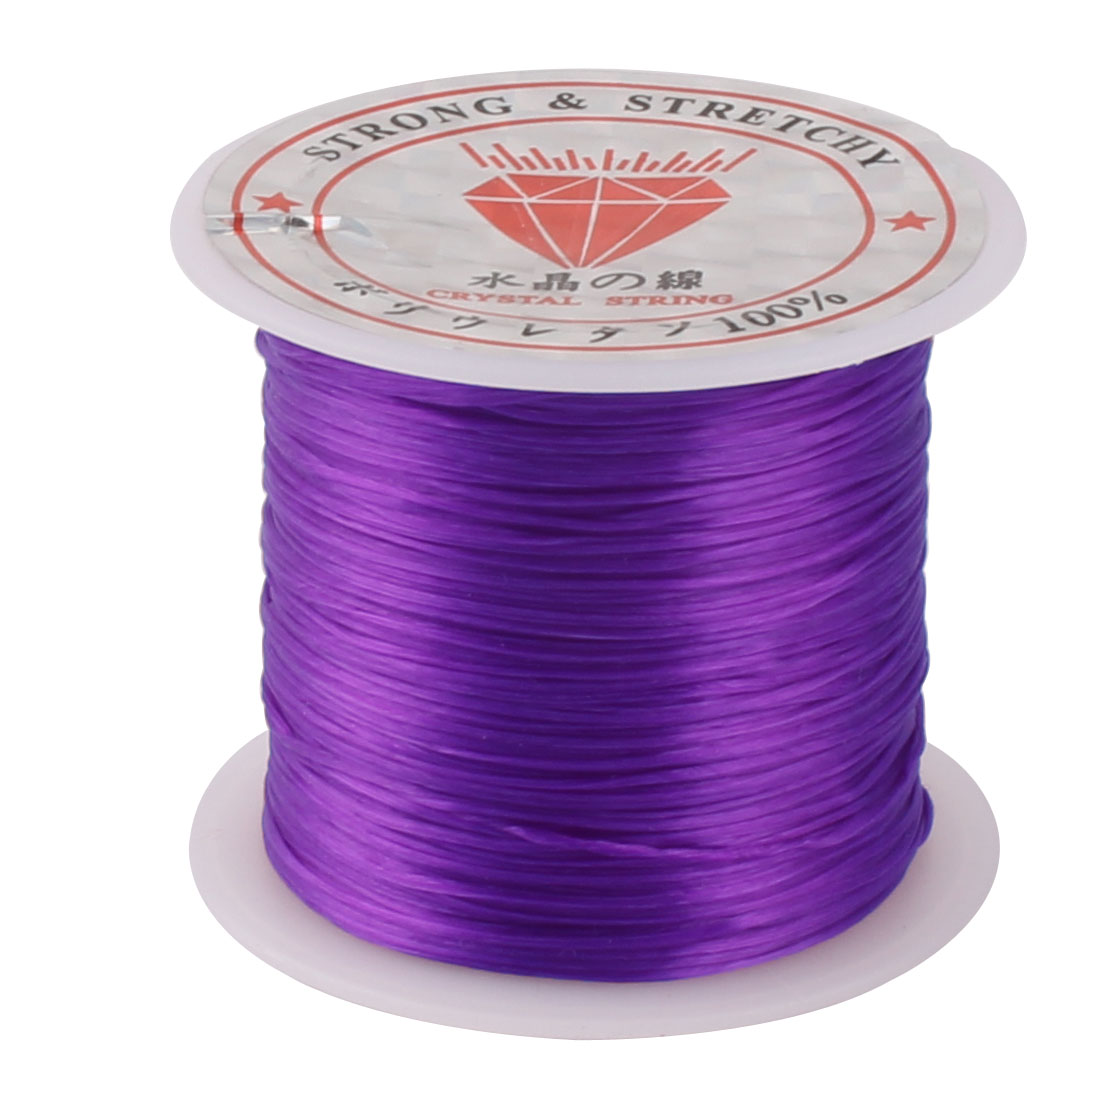 Stretchy Elastic Bracelet Making String Beading Thread Cord Roll Purple 10M Length